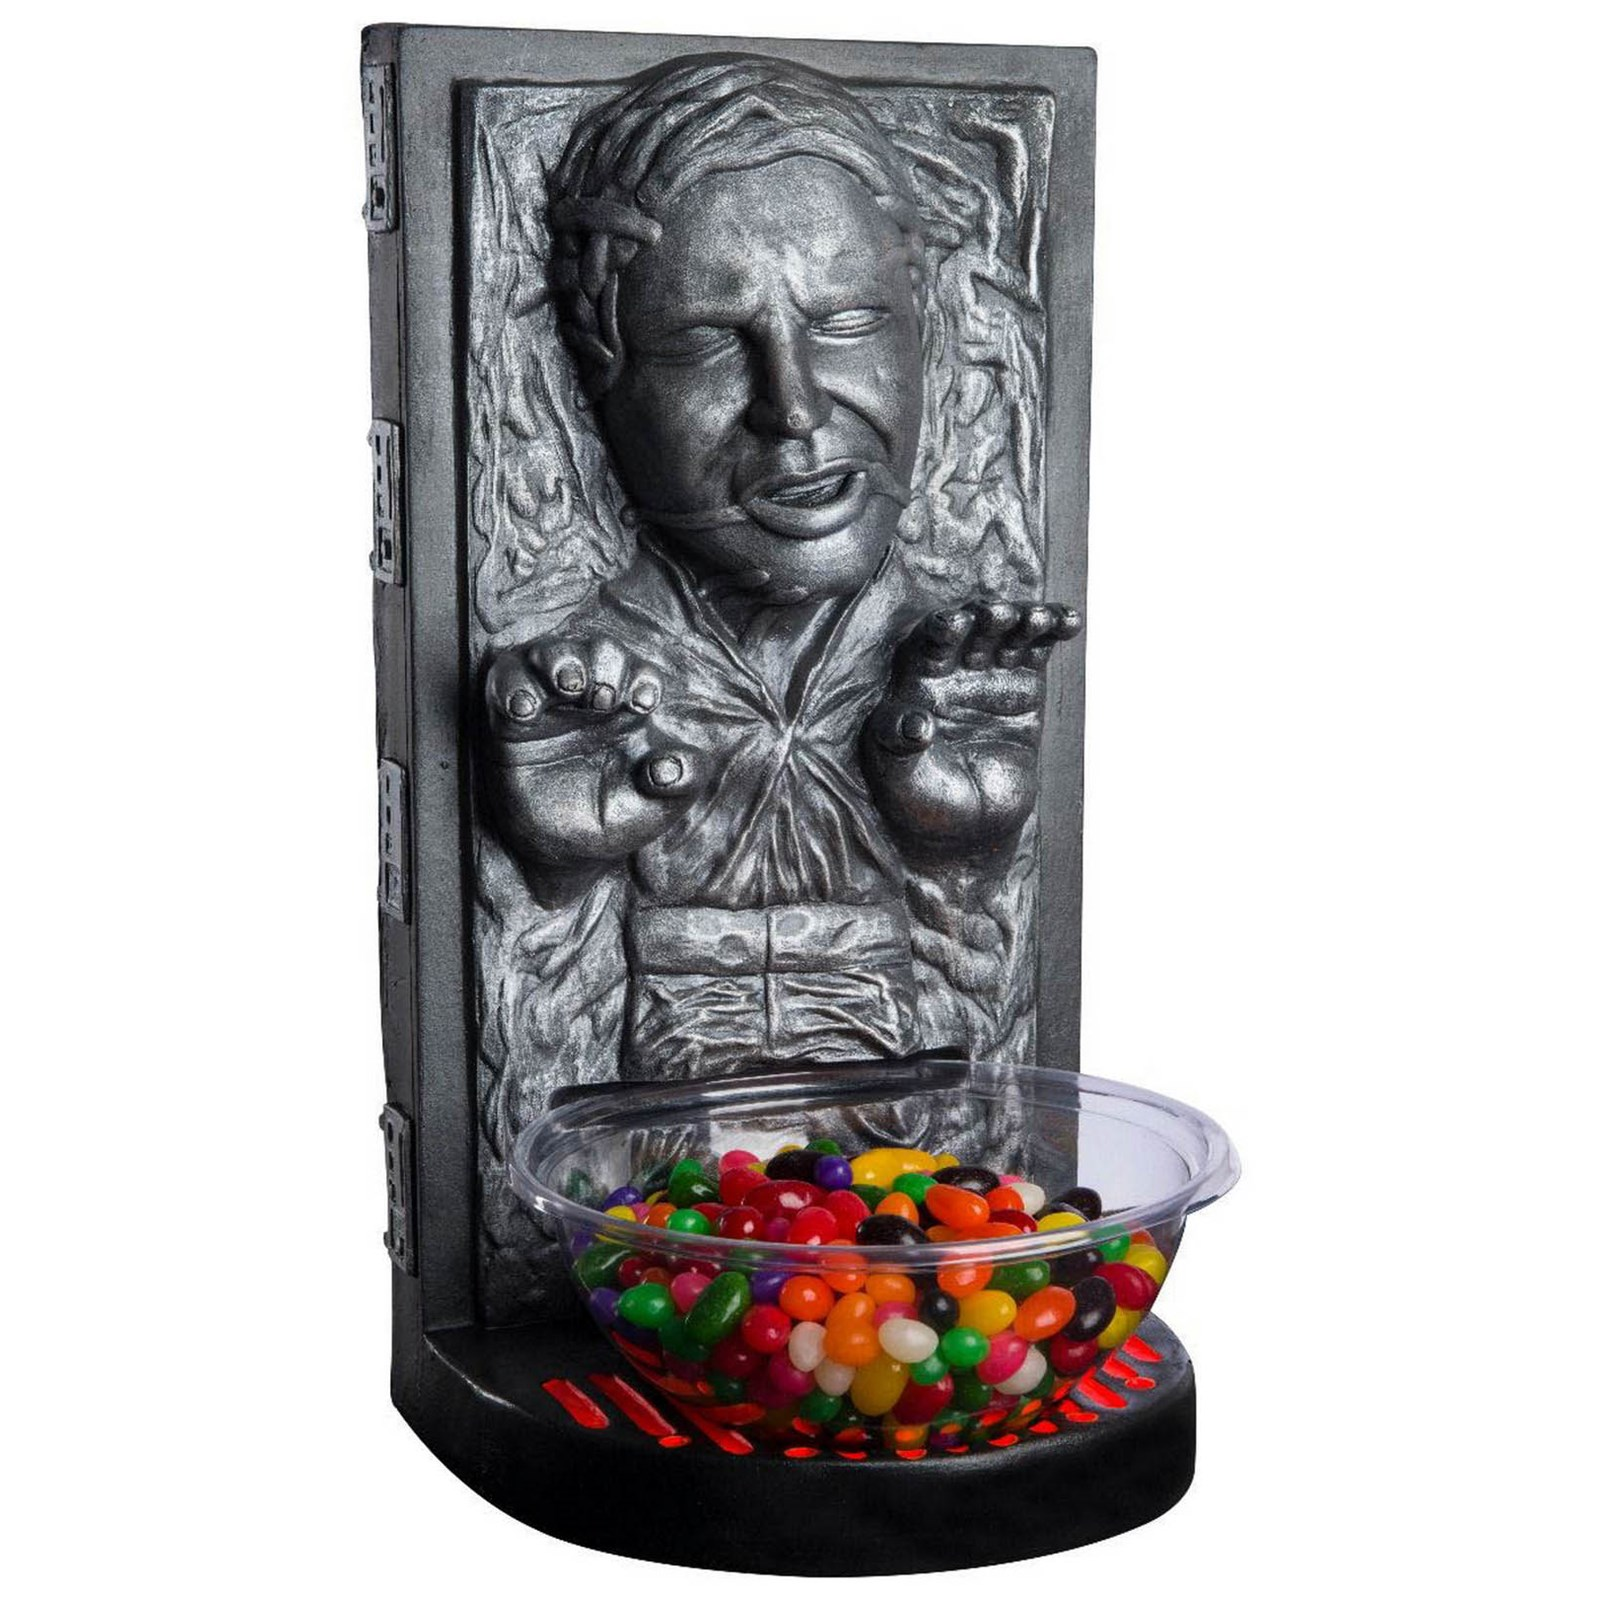 Star Wars Classic Han Solo In Carbonite Candy Bowl Holder